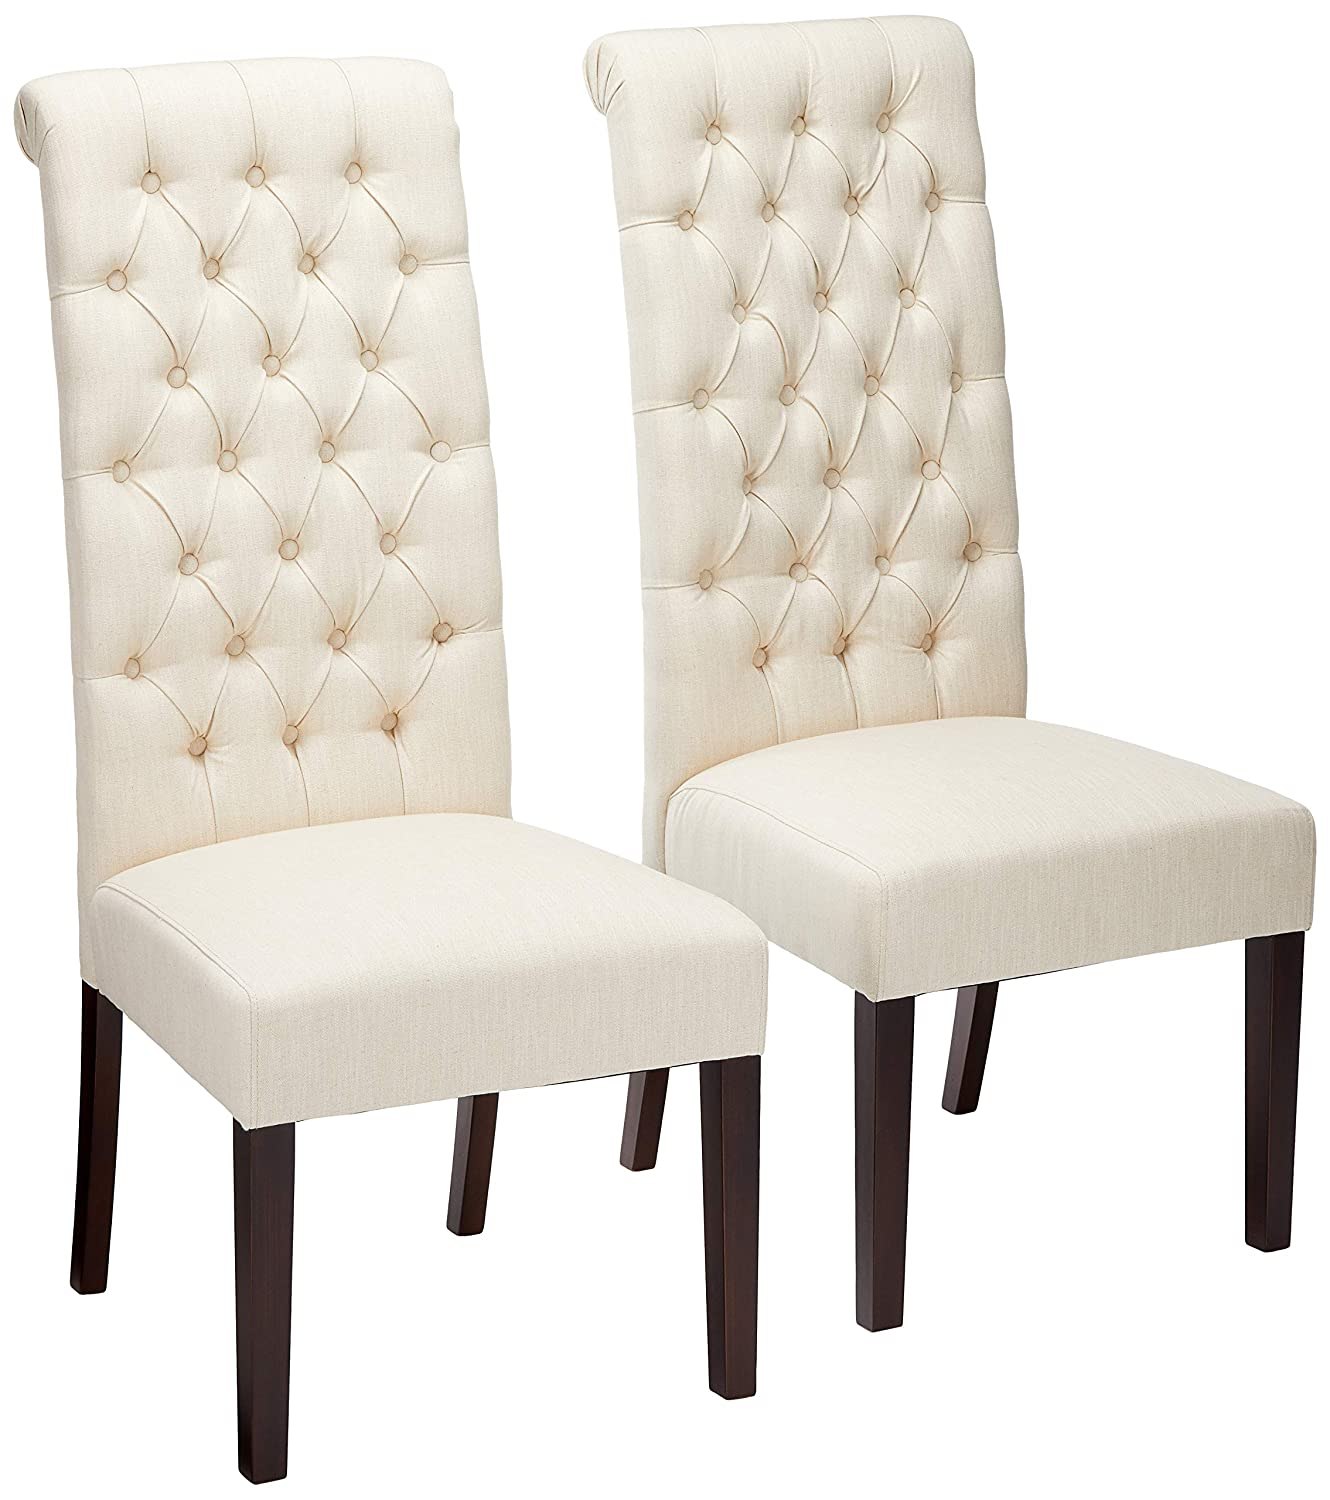 Christopher Knight Home Cooper Tall Back Natural Fabric Dining Chairs set of 2 , Beige